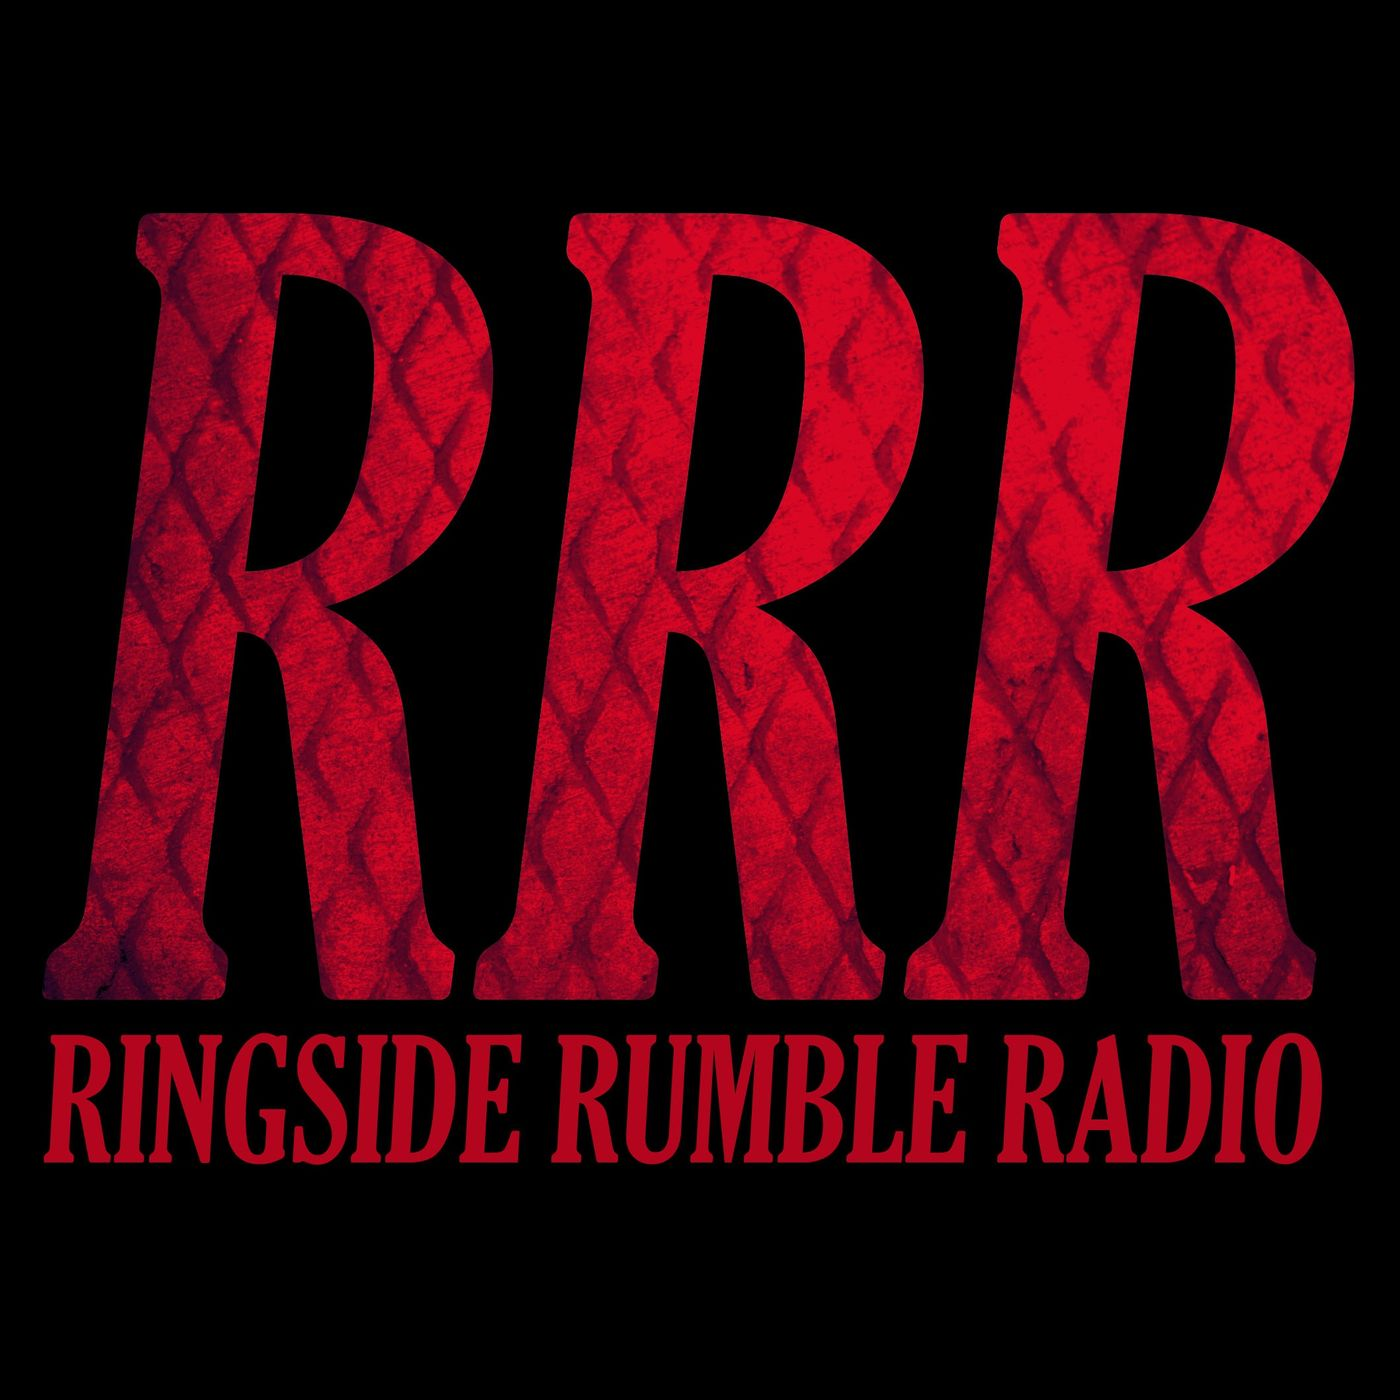 Ringside Rumble Radio